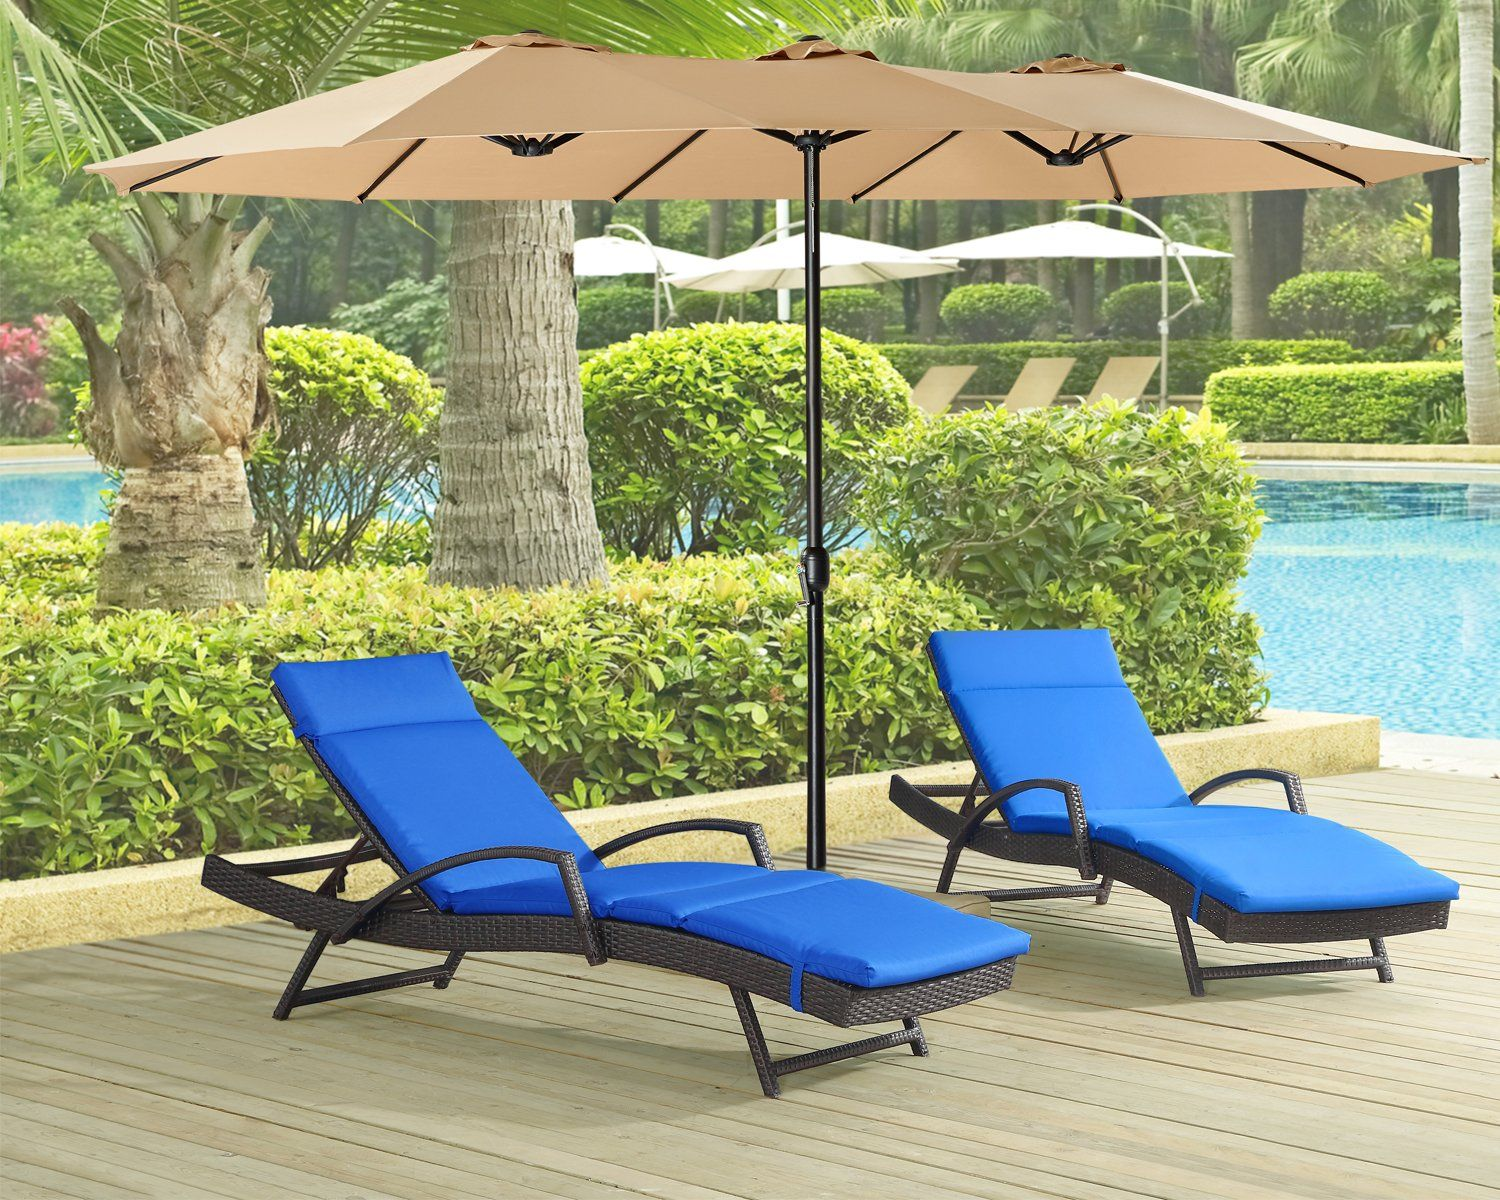 Iwicker outdoor adjustable pool wicker chaise lounge chair